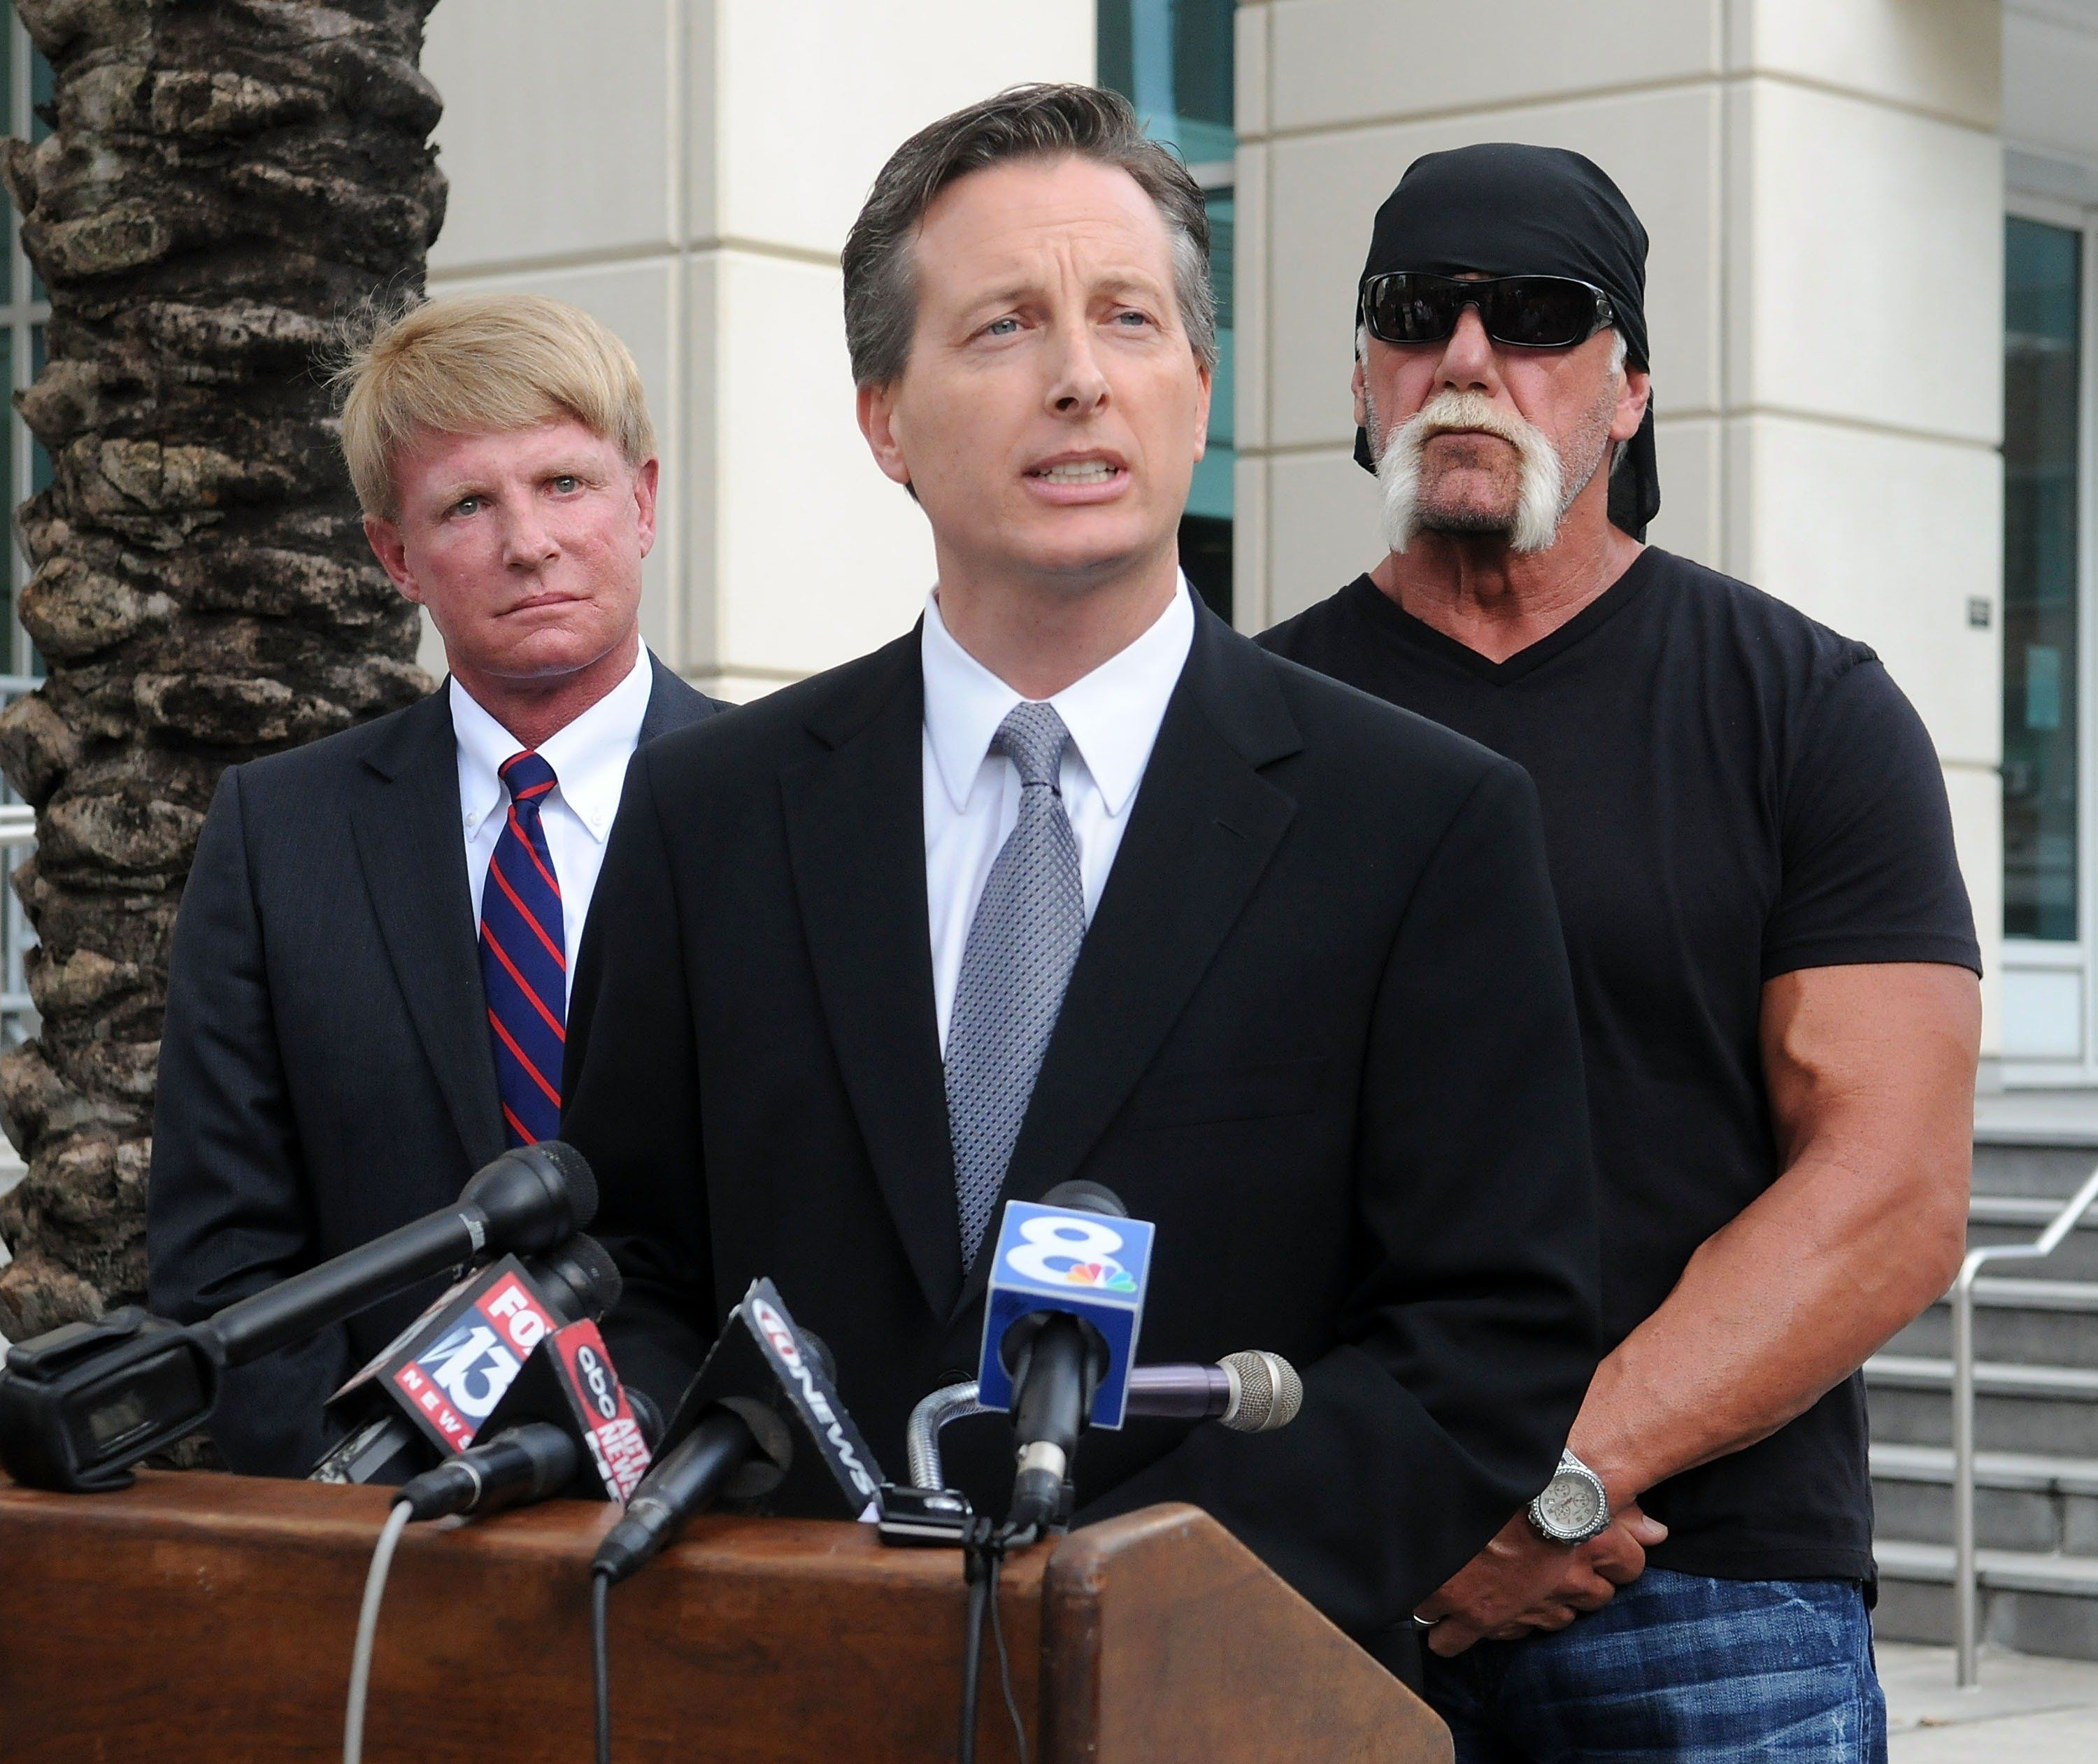 Charles Harder, center, speaks during a press conference with his client Hulk Hogan and fellow attorney...